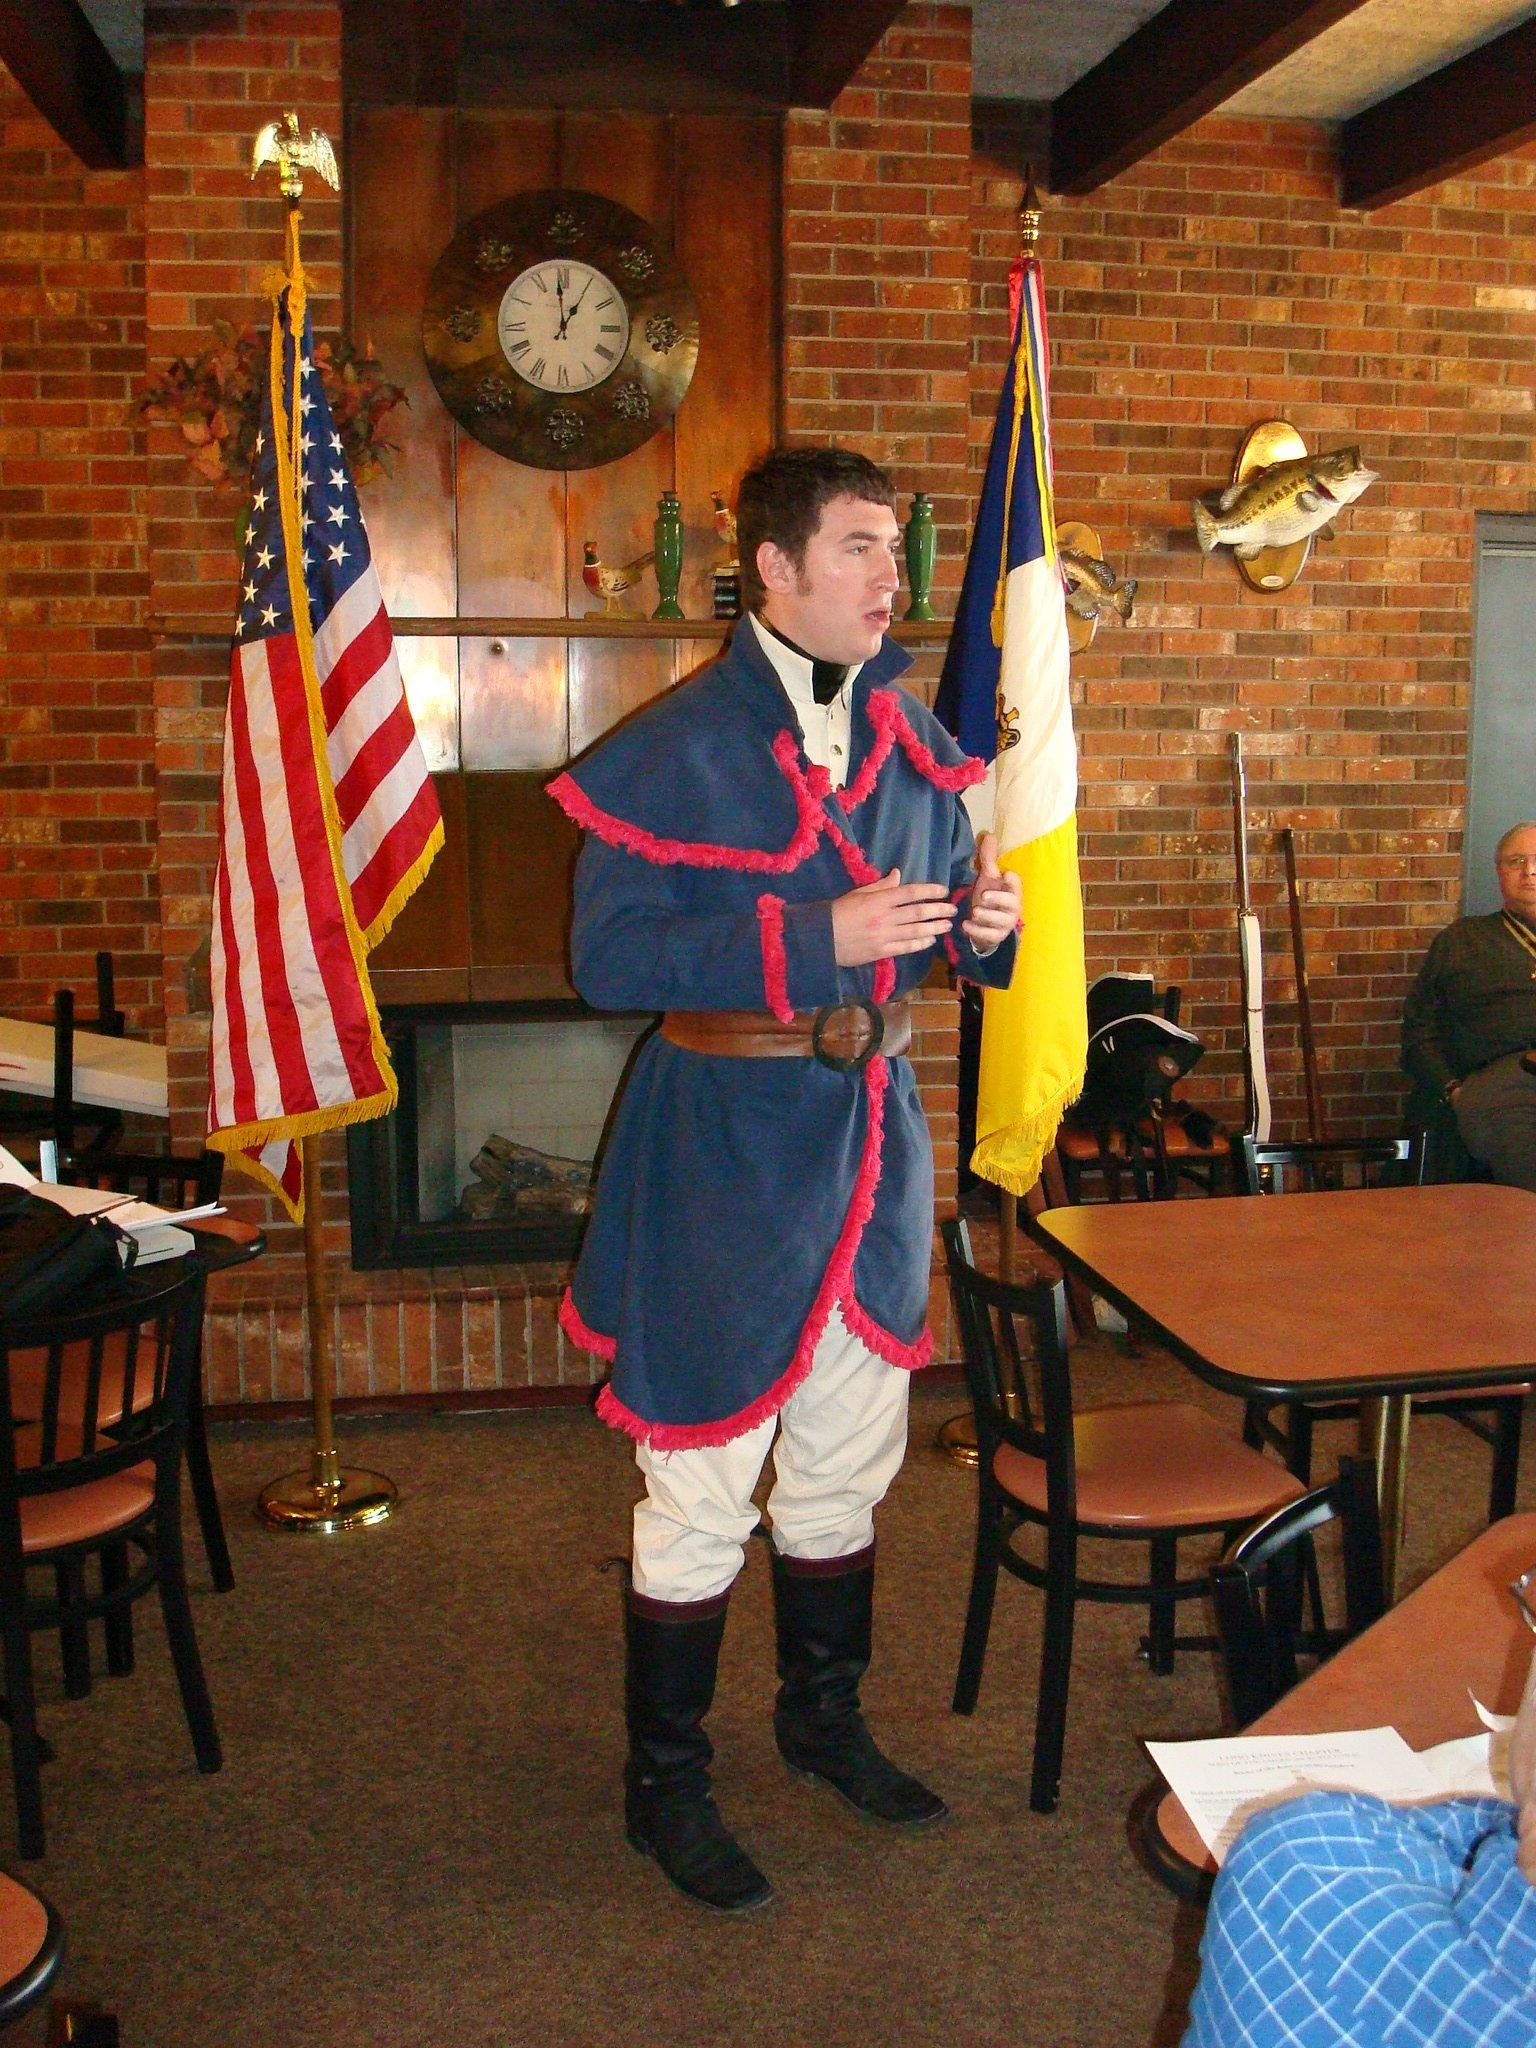 ... 17th Illinois Territorial Rangers, their formation and role in the  establishment of the Illinois Territory. He discussed the War of 1812 in  Illinois, ...